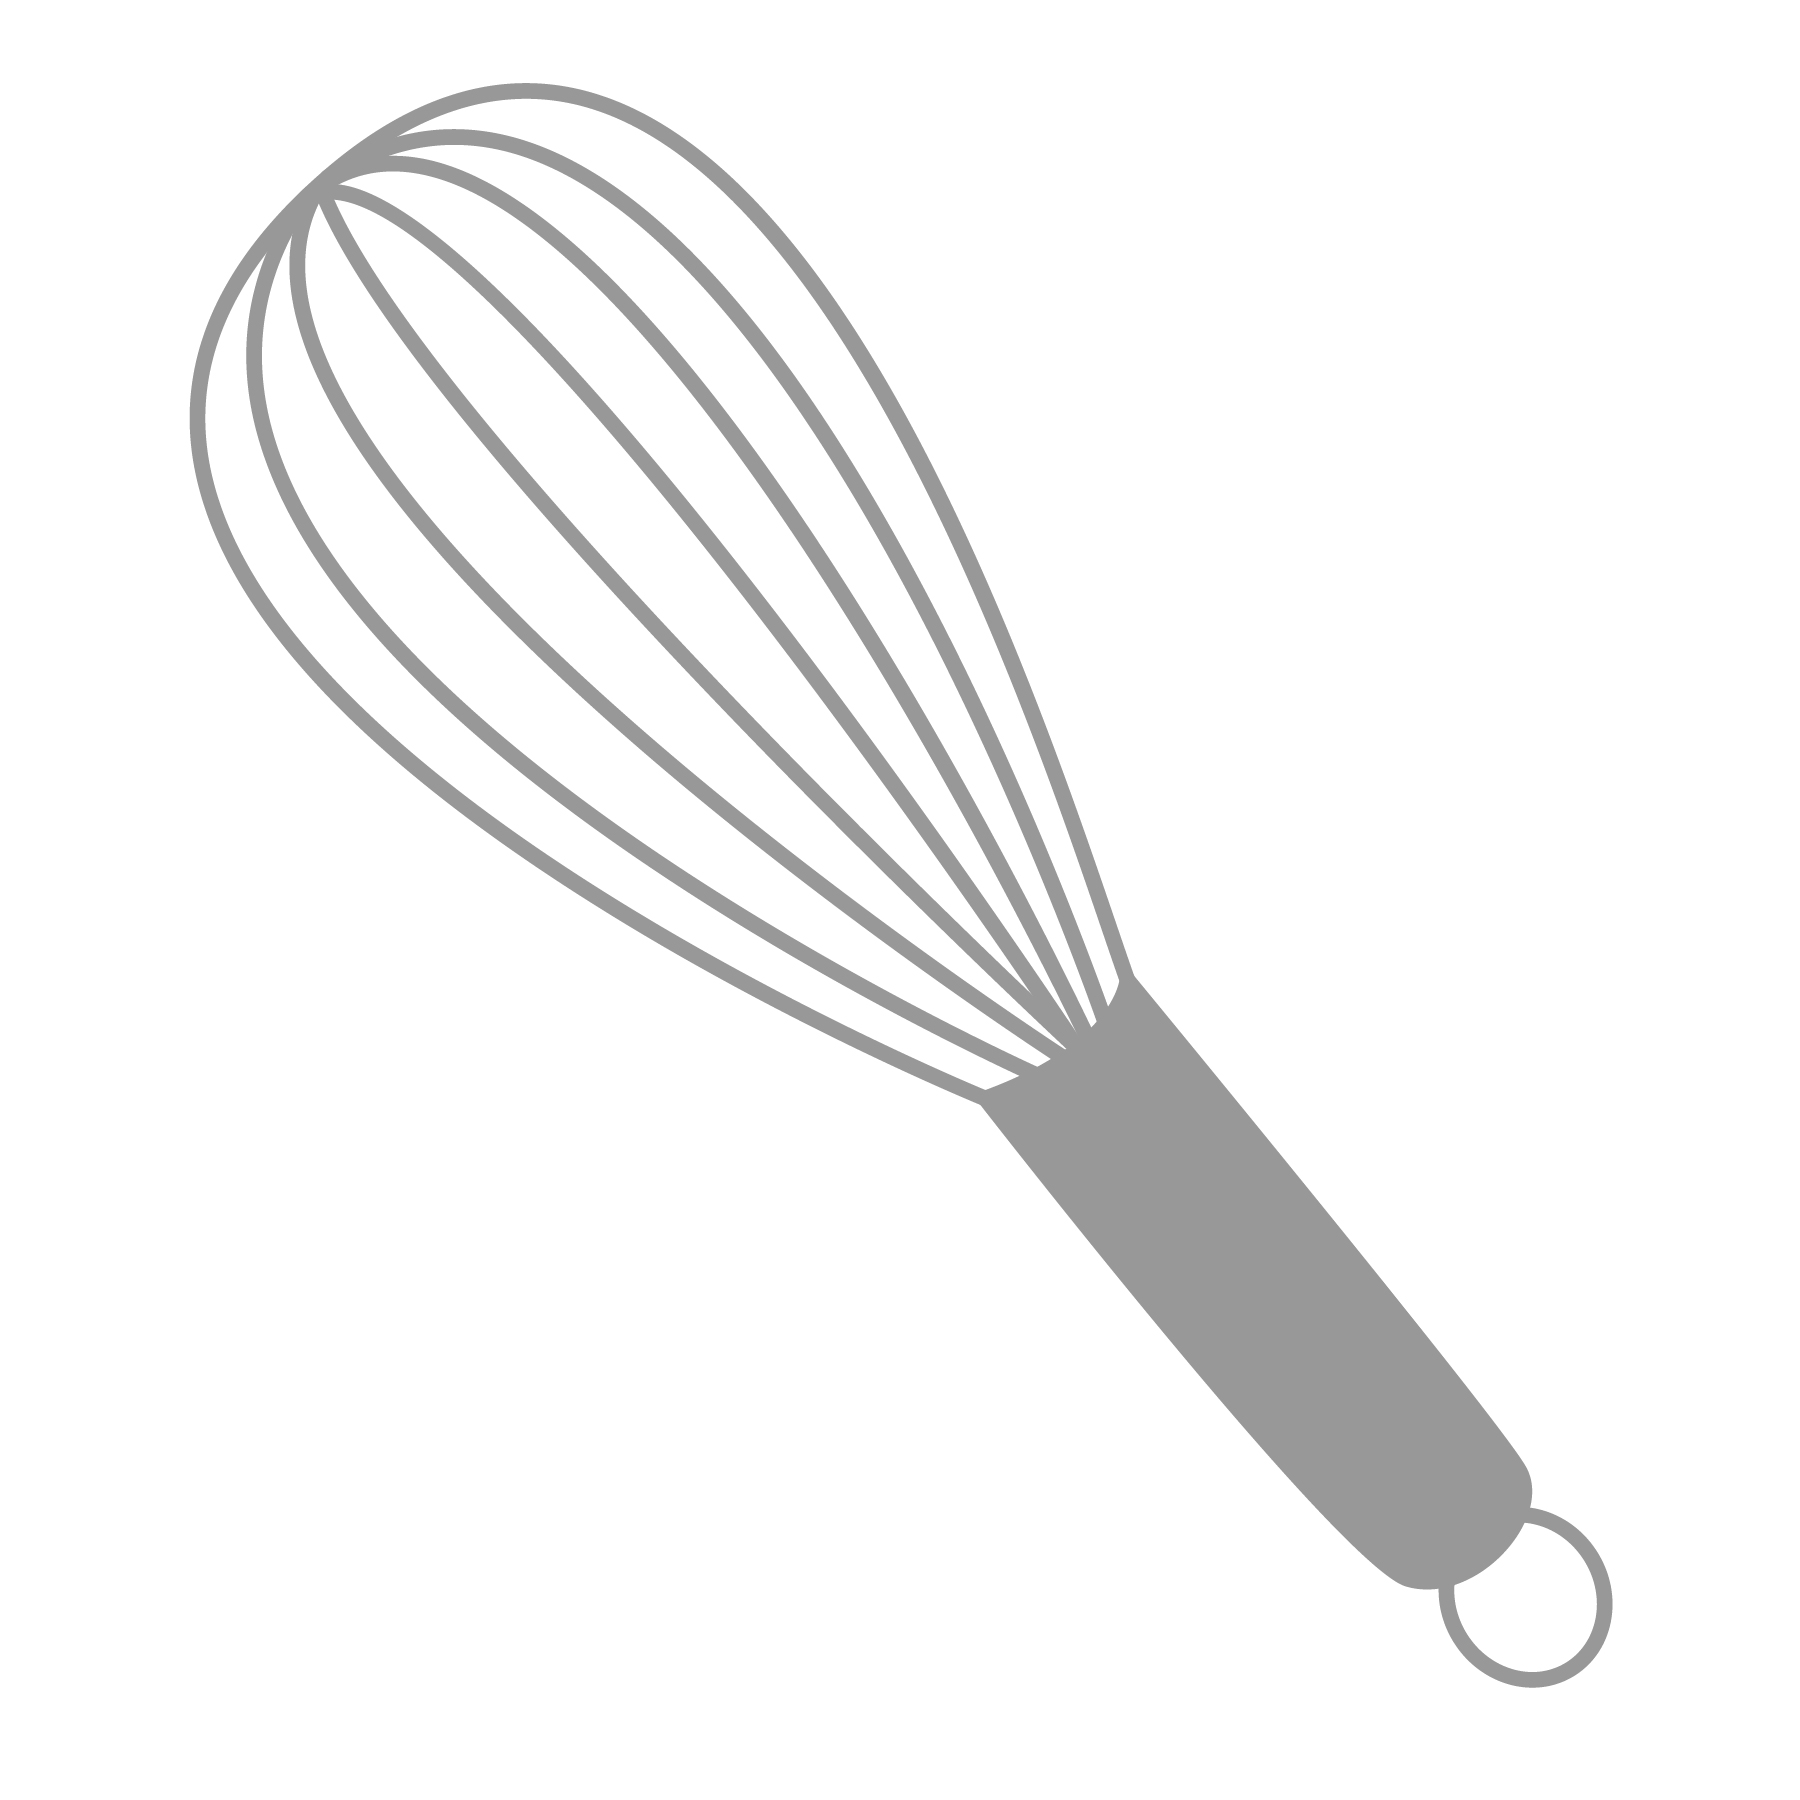 582 Whisk free clipart.